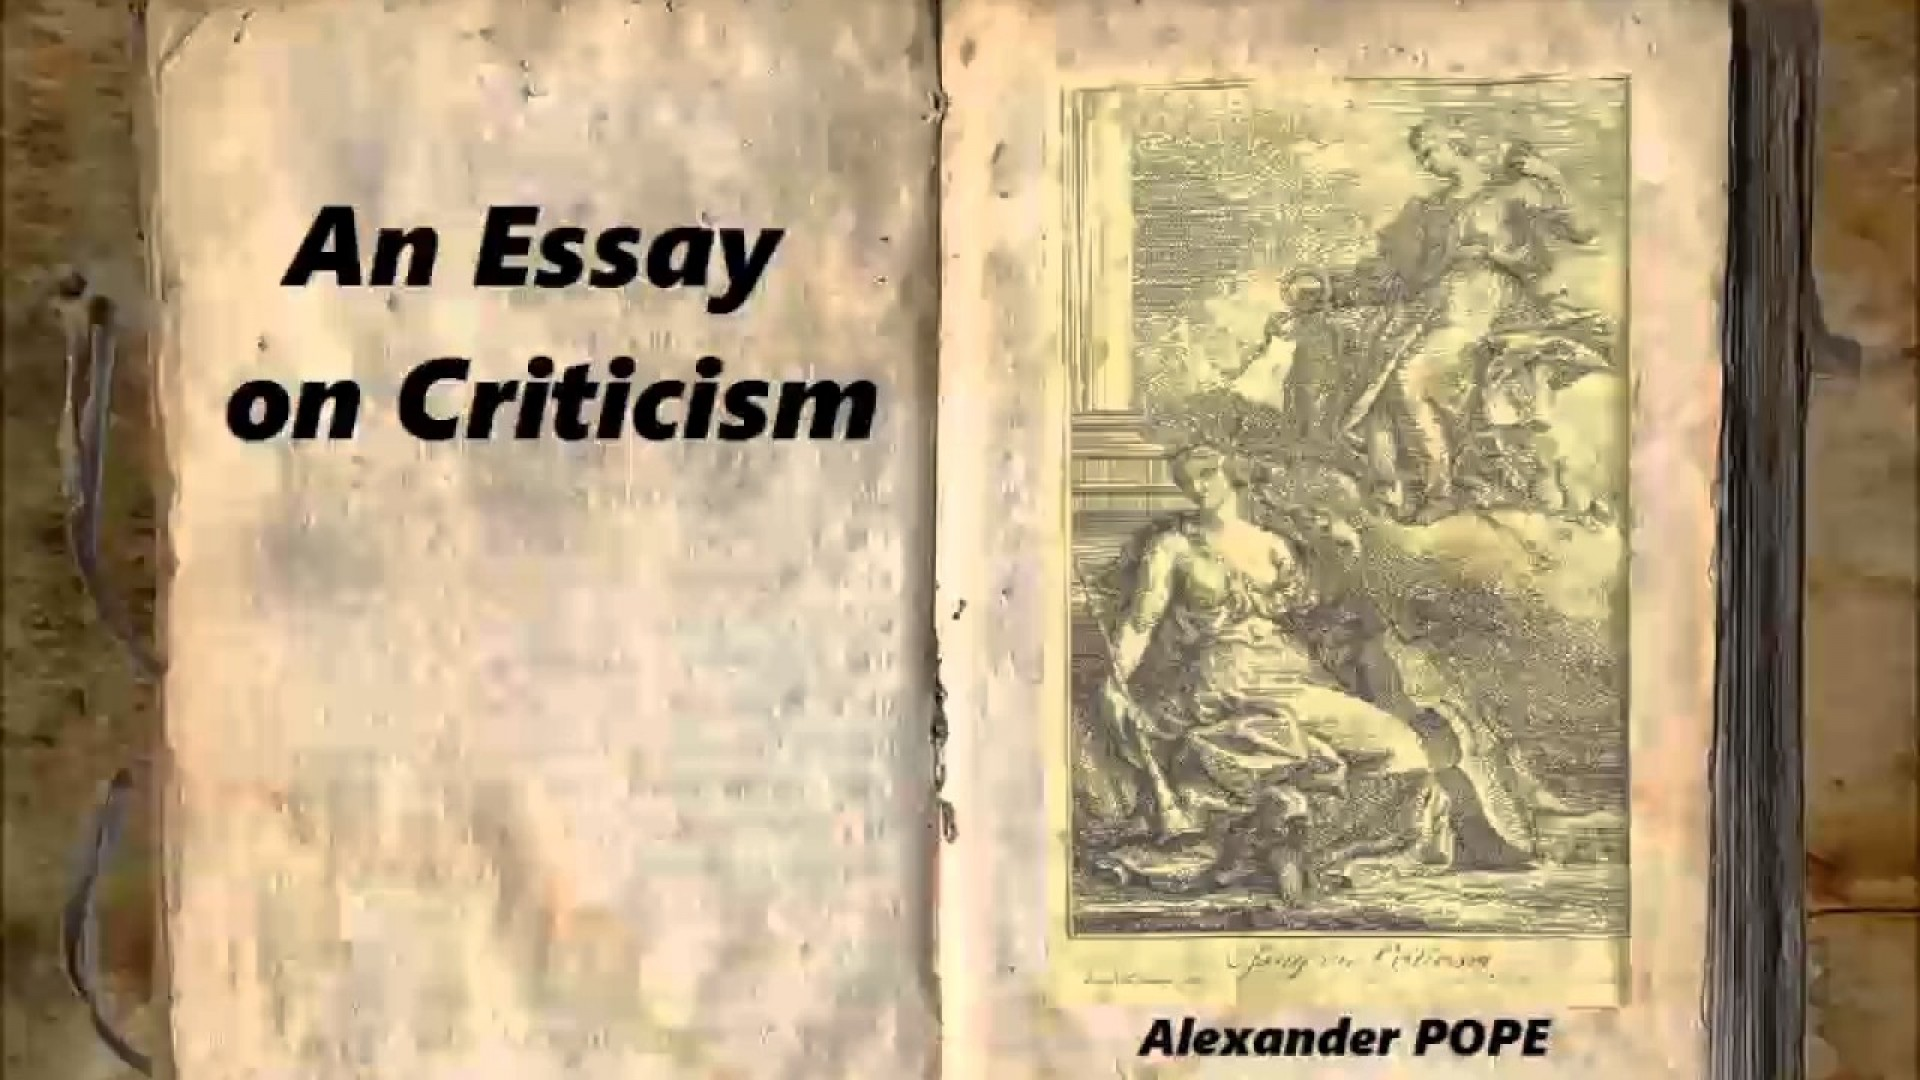 005 Maxresdefault Essay Example An On Sensational Criticism Lines 233 To 415 Meaning Summary Sparknotes 1920